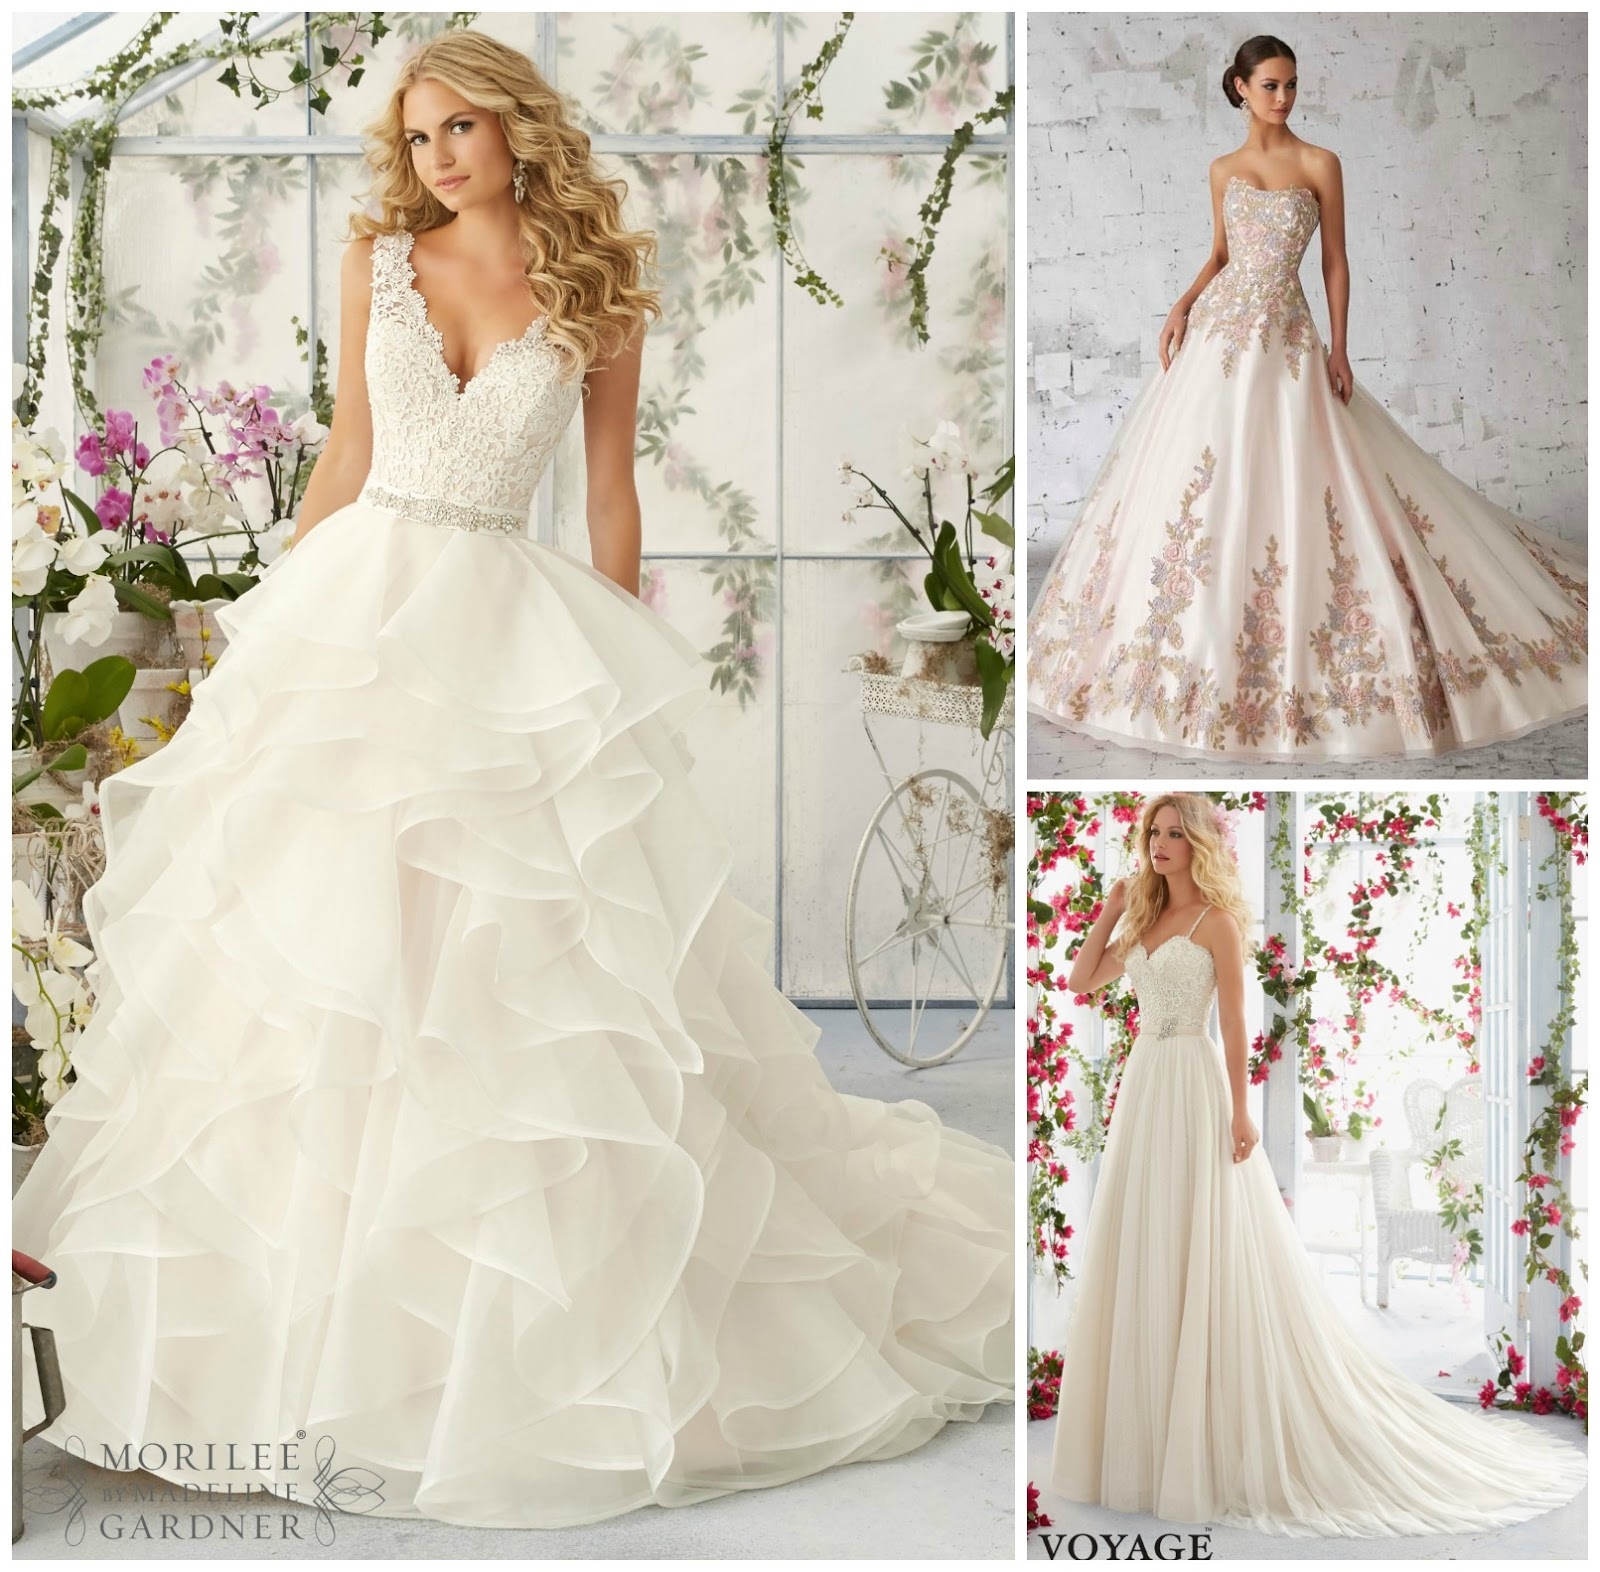 Brides of america online store january 2016 for Miami wedding dresses stores